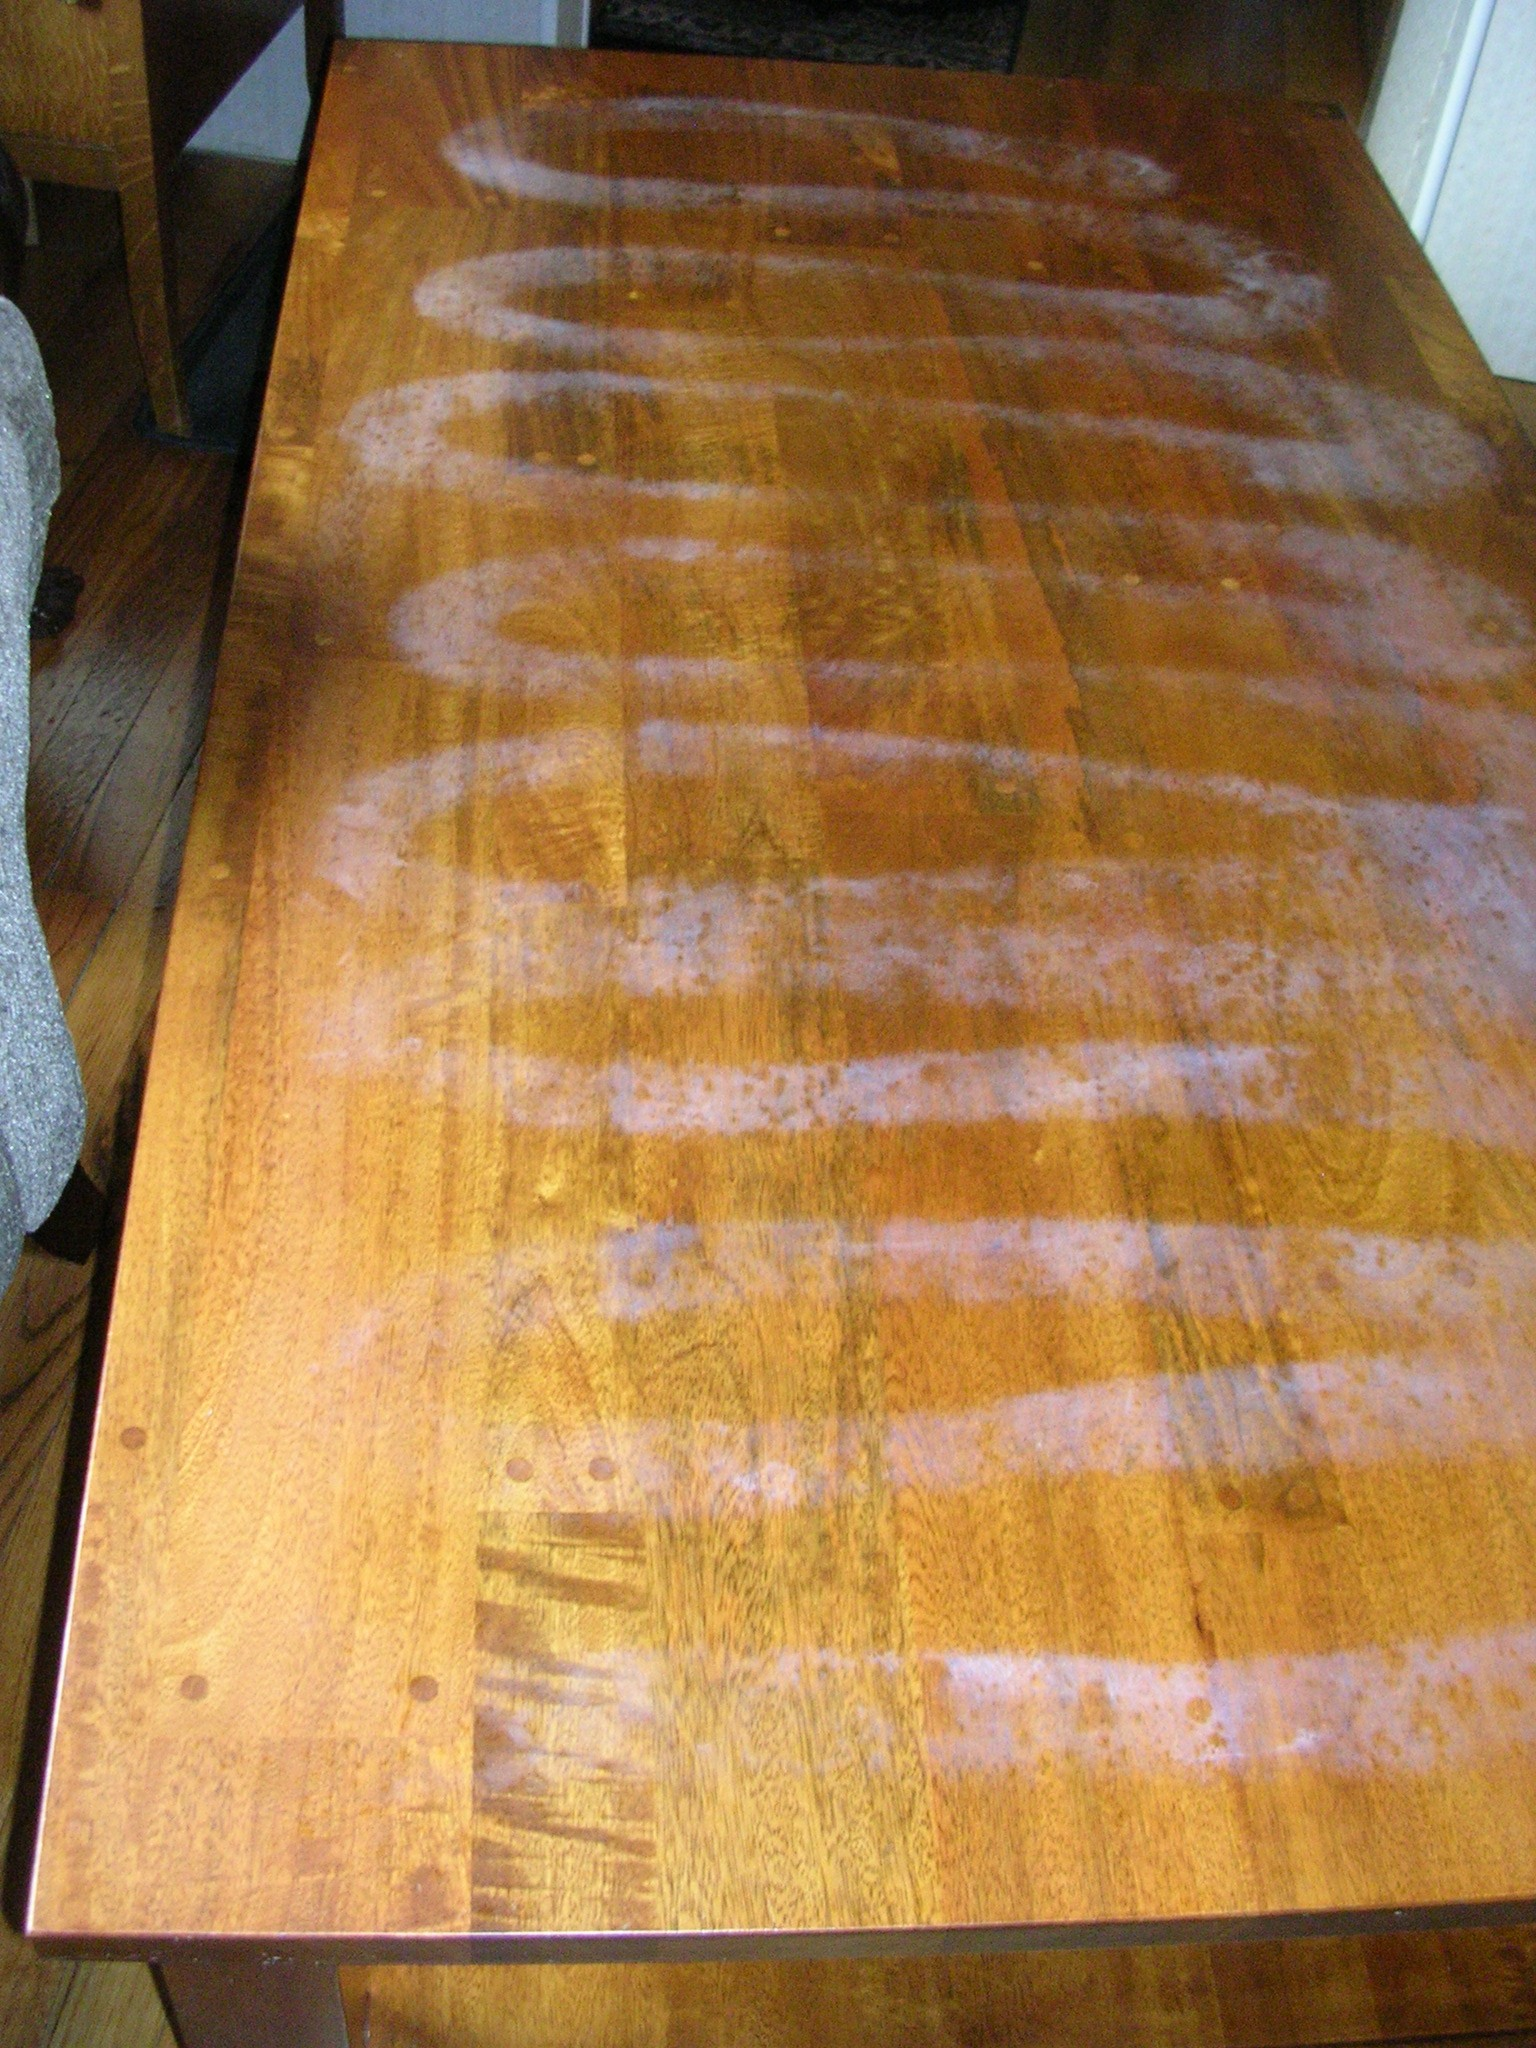 damage REPAIR - • Minor scratches and abrasions• Deep cuts and gouges• Water rings and heat marks• Stains• Pet chews• Damaged veneer